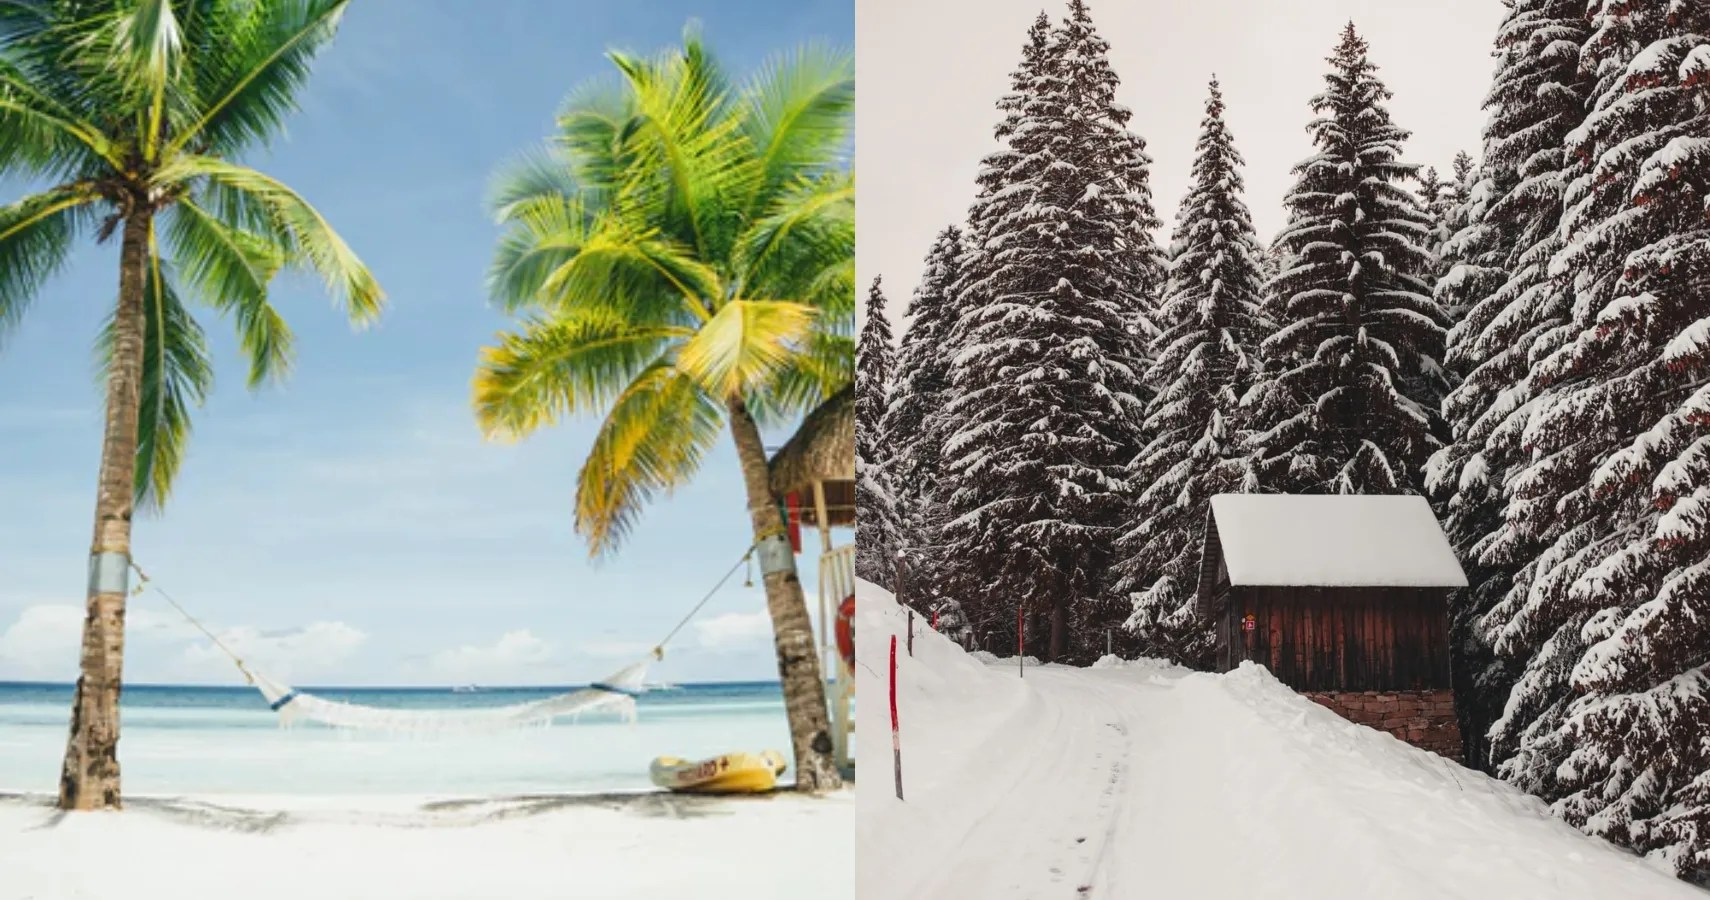 Summer Vs Winter When Is Better To Travel 5 Reasons For